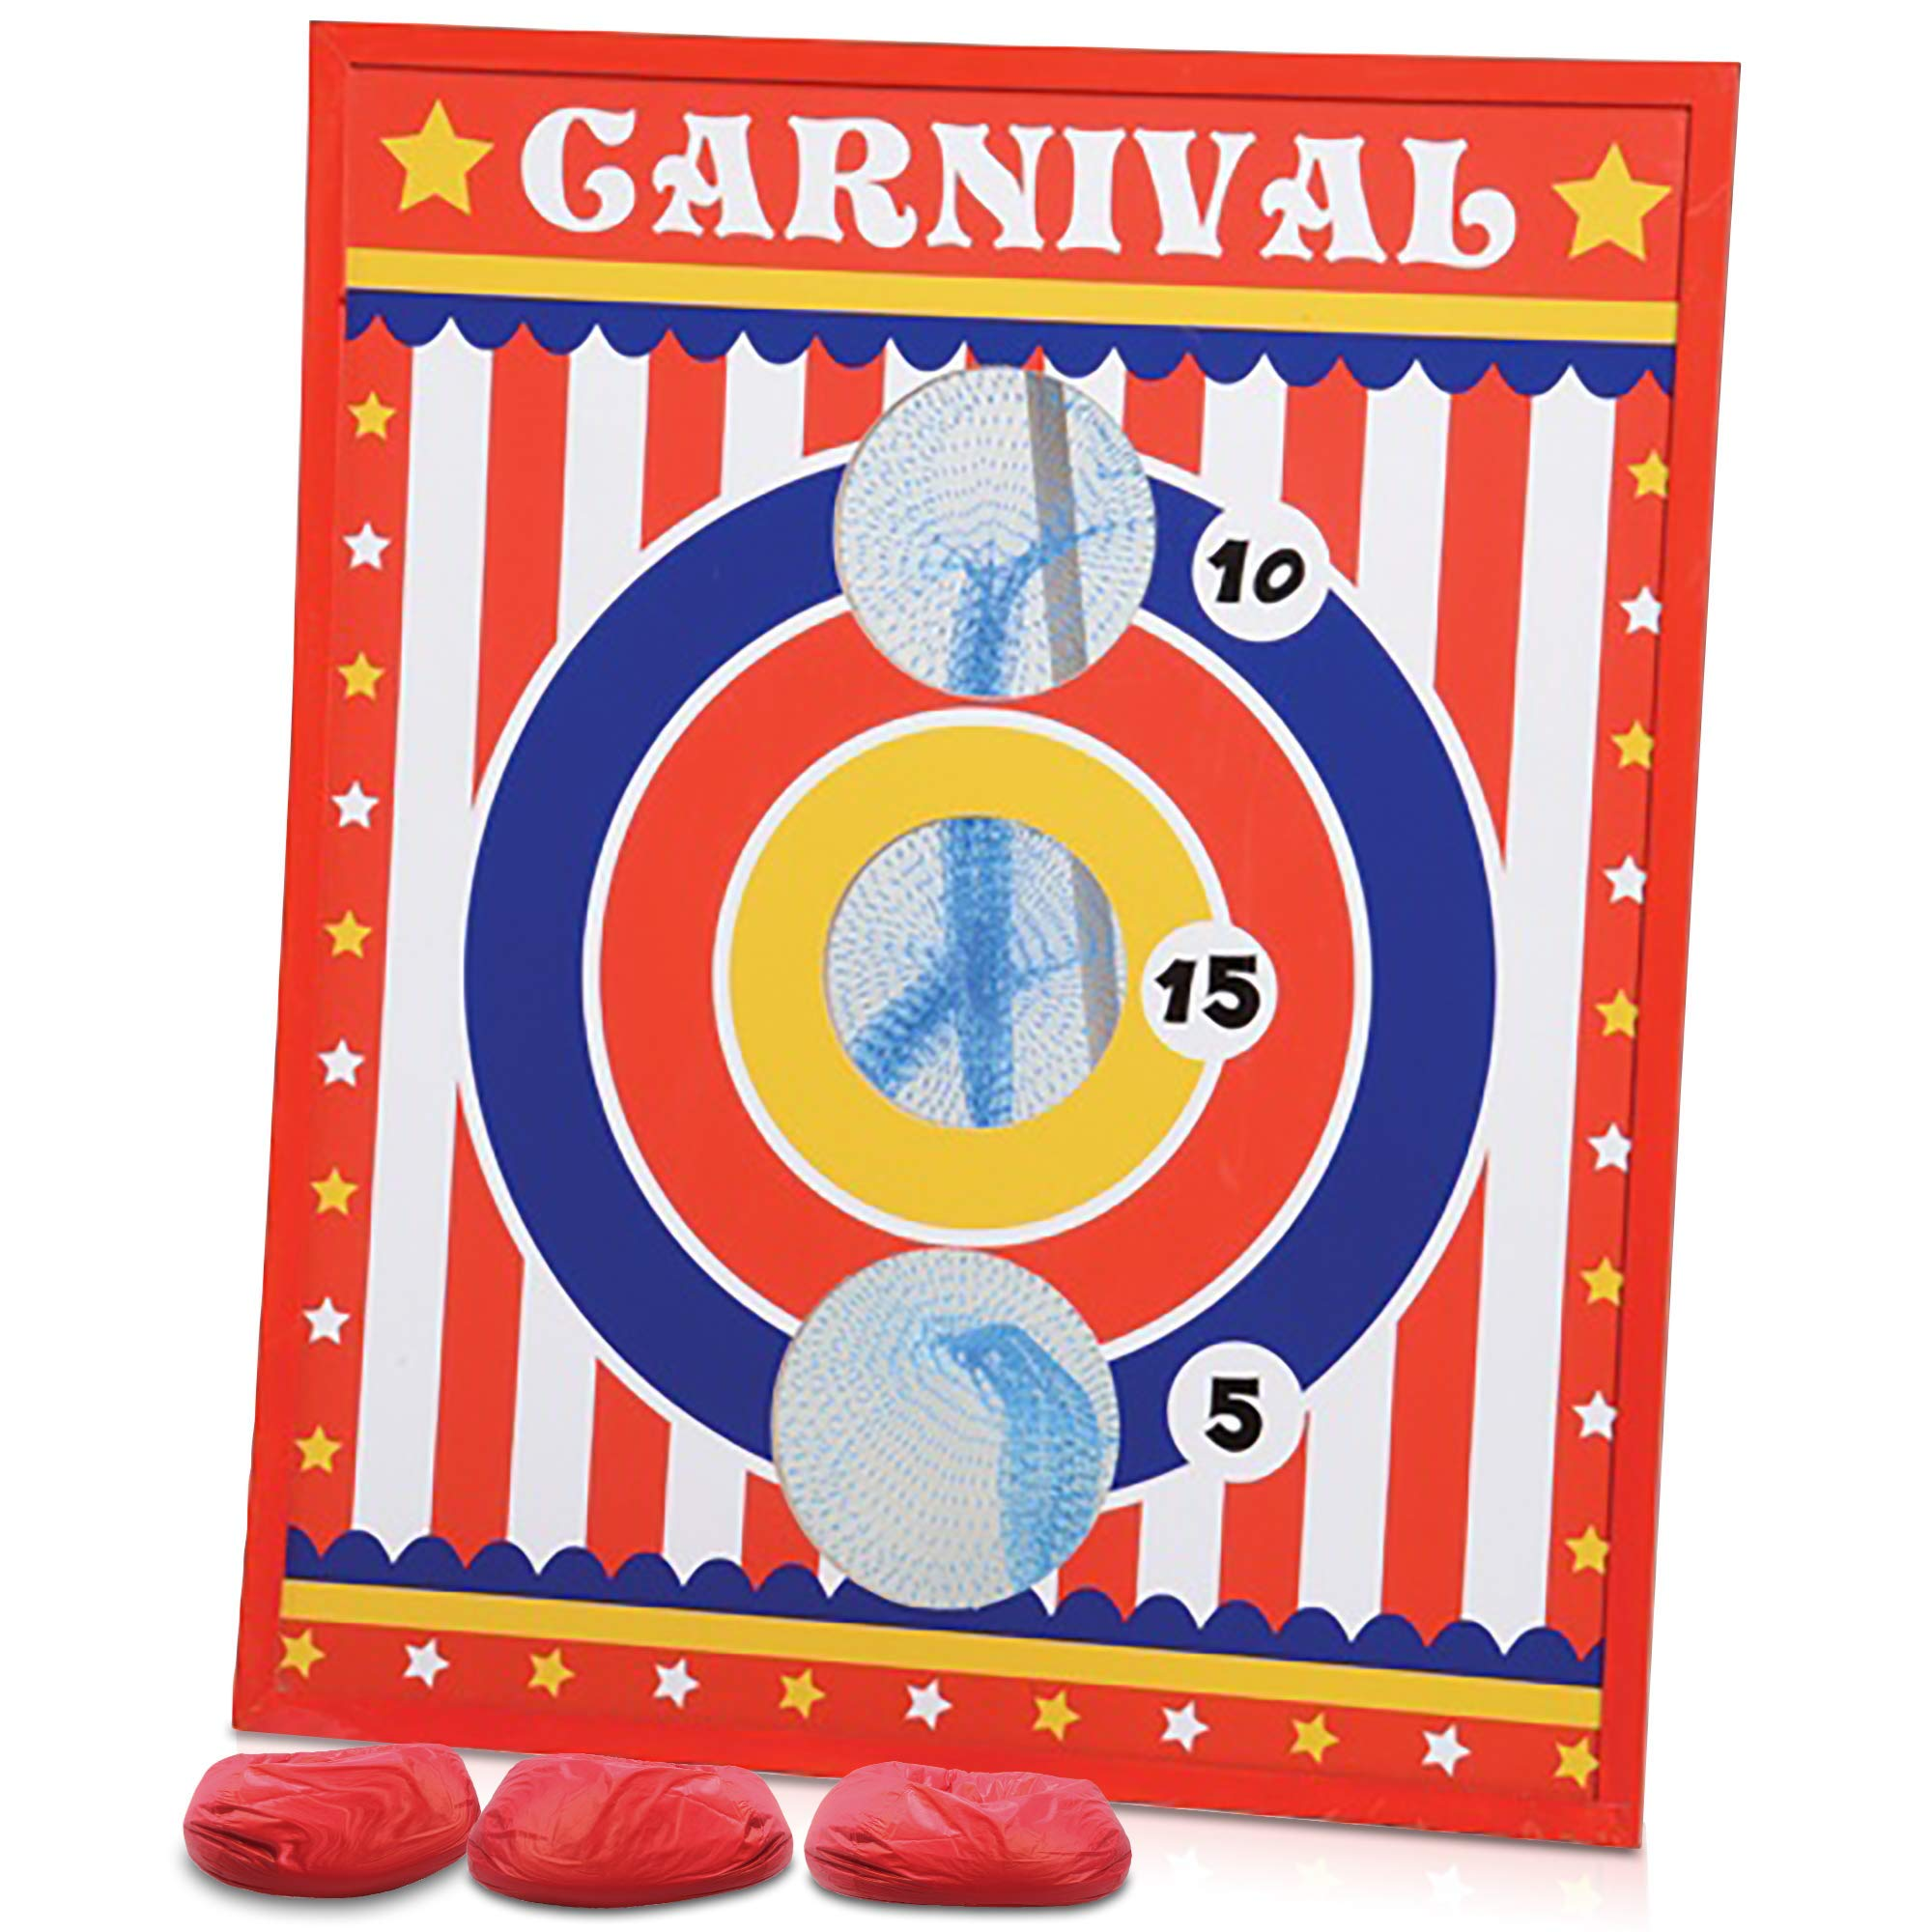 Gamie Carnival Bean Bag Toss Game for Kids, Adults and Family - Includes 3 Beanbags and Durable Wood Scoreboard - Fun Birthday Party Activity for Boys and Girls, Unique Carnival Supplies by Gamie